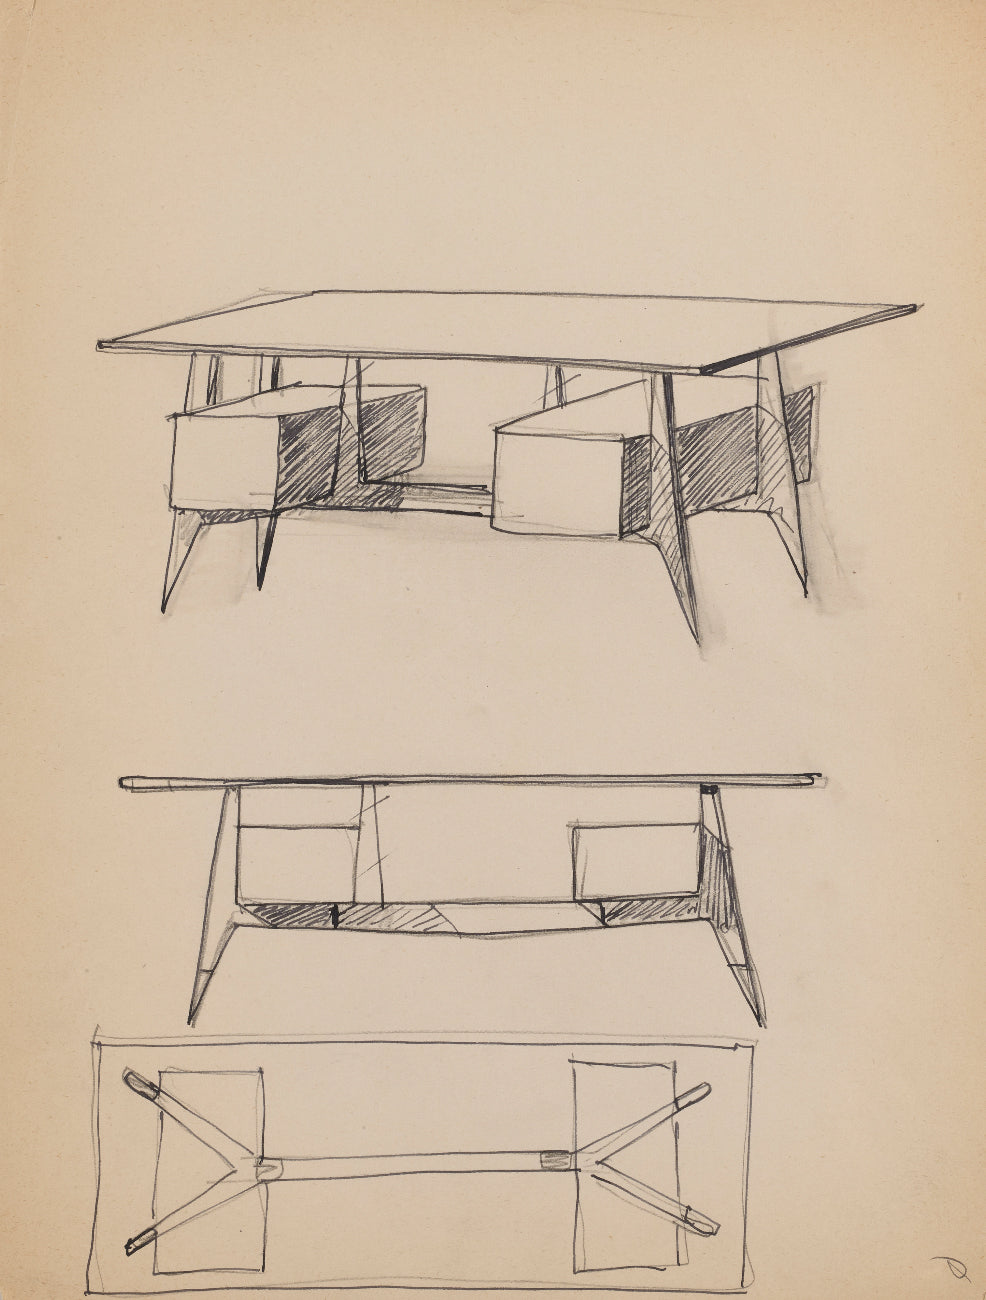 Gio Ponti Table design sketch in The Eclectic Life and Work of Gio Ponti for A Collected Man London